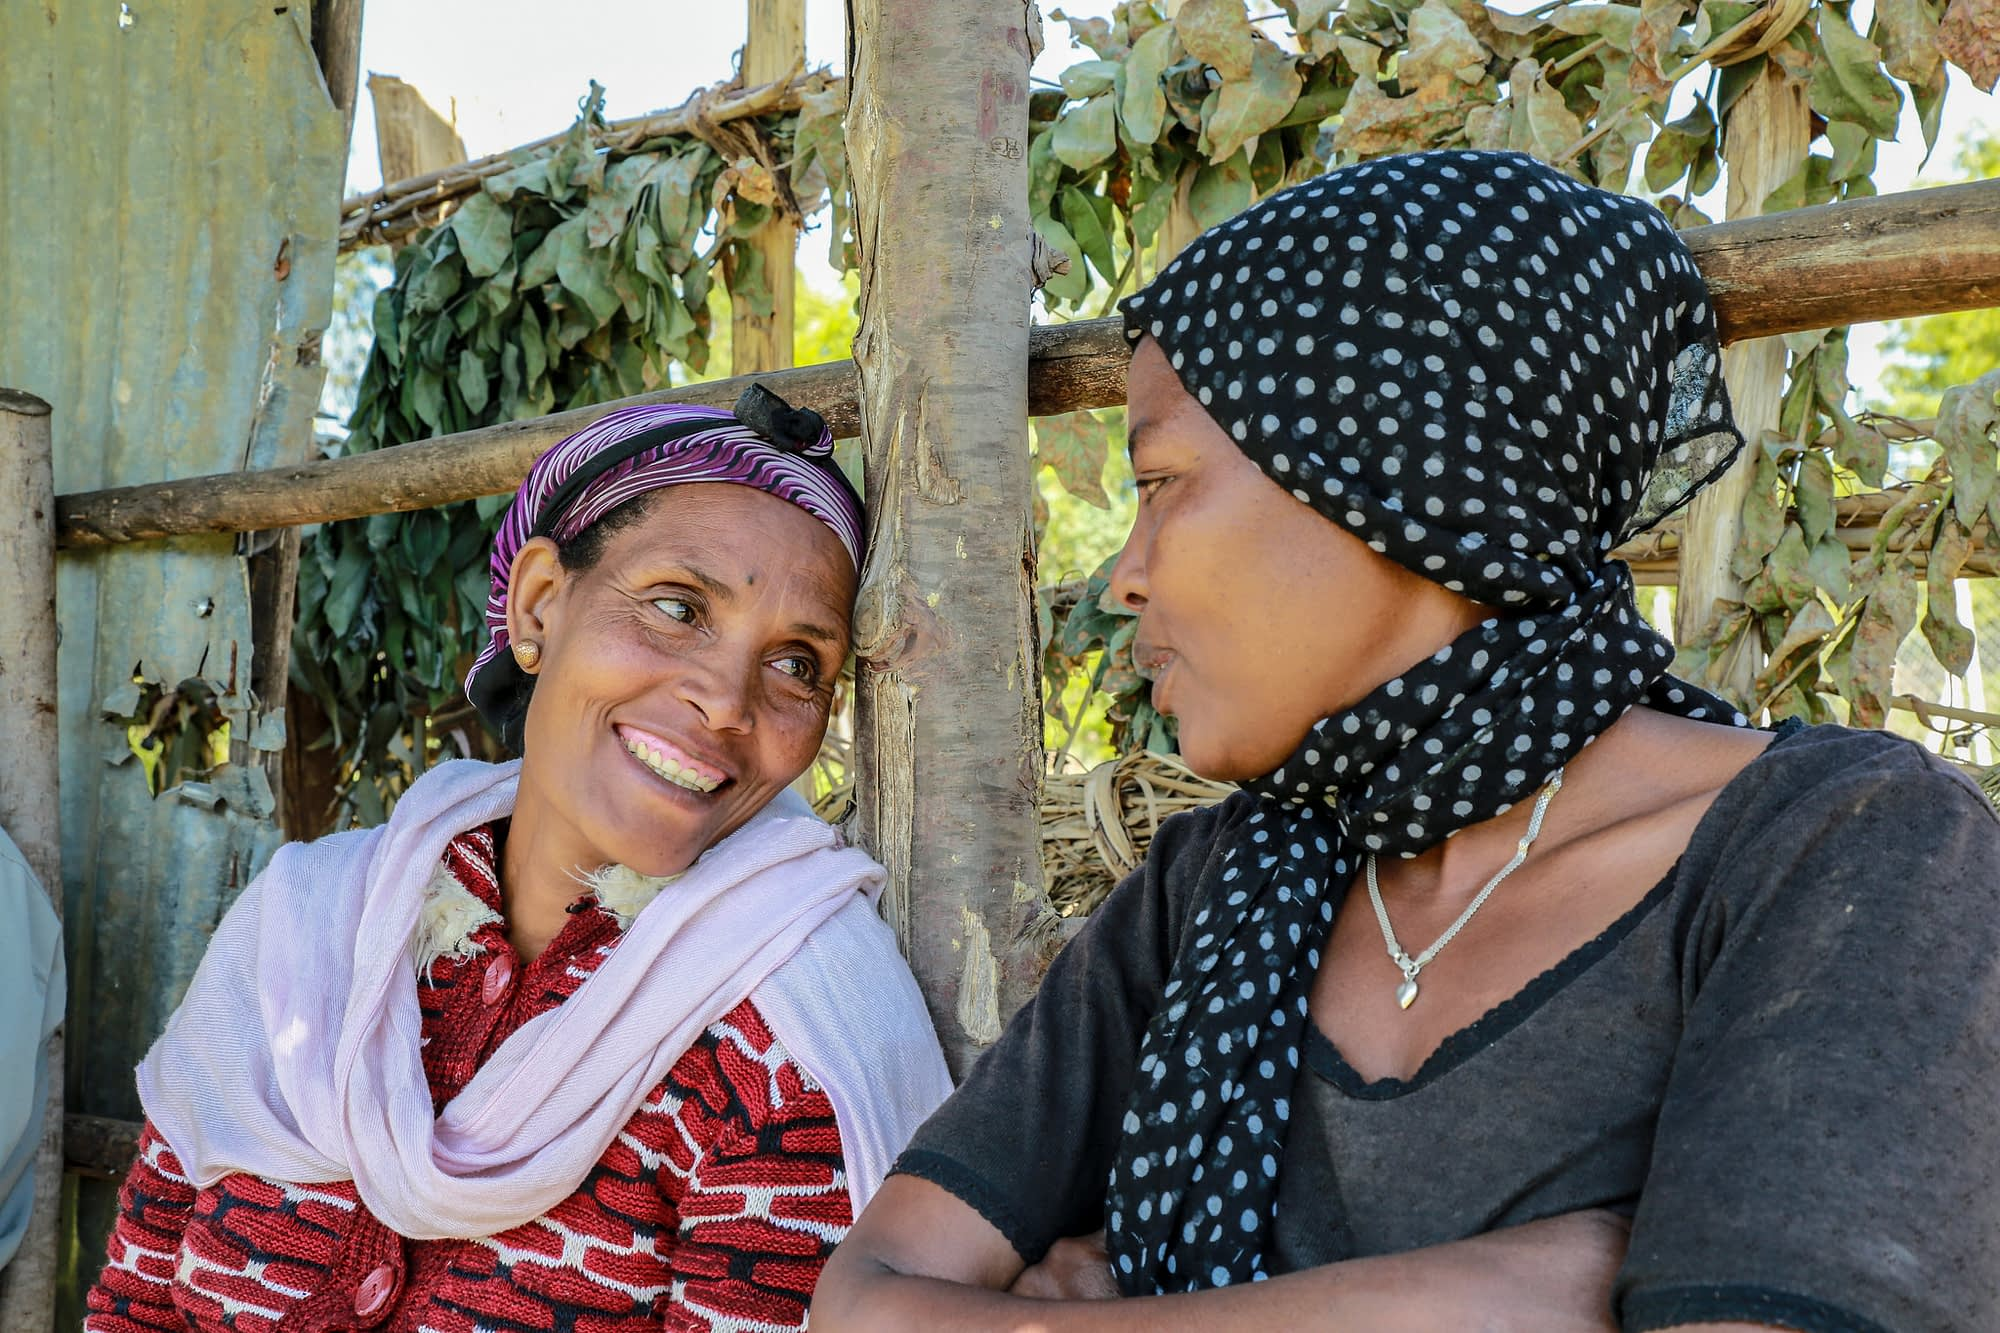 "Amarech Desta (left) is the chairwoman of Tembo Awtena, a womens' seed producer association in the Angacha district of Ethiopia's Southern Nations, Nationalities, and Peoples' Region (SNNP). As part of the Wheat Seed Scaling project, the group received early-generation seed and a seed thresher from CIMMYT. ""In 2016 we sold more than $7,400 worth of seed,"" Desta said. ""Our success attracted 30 additional women farmers in 2017, bringing the total membership to 133."" (Photo: Apollo Habtamu/CIMMYT)"